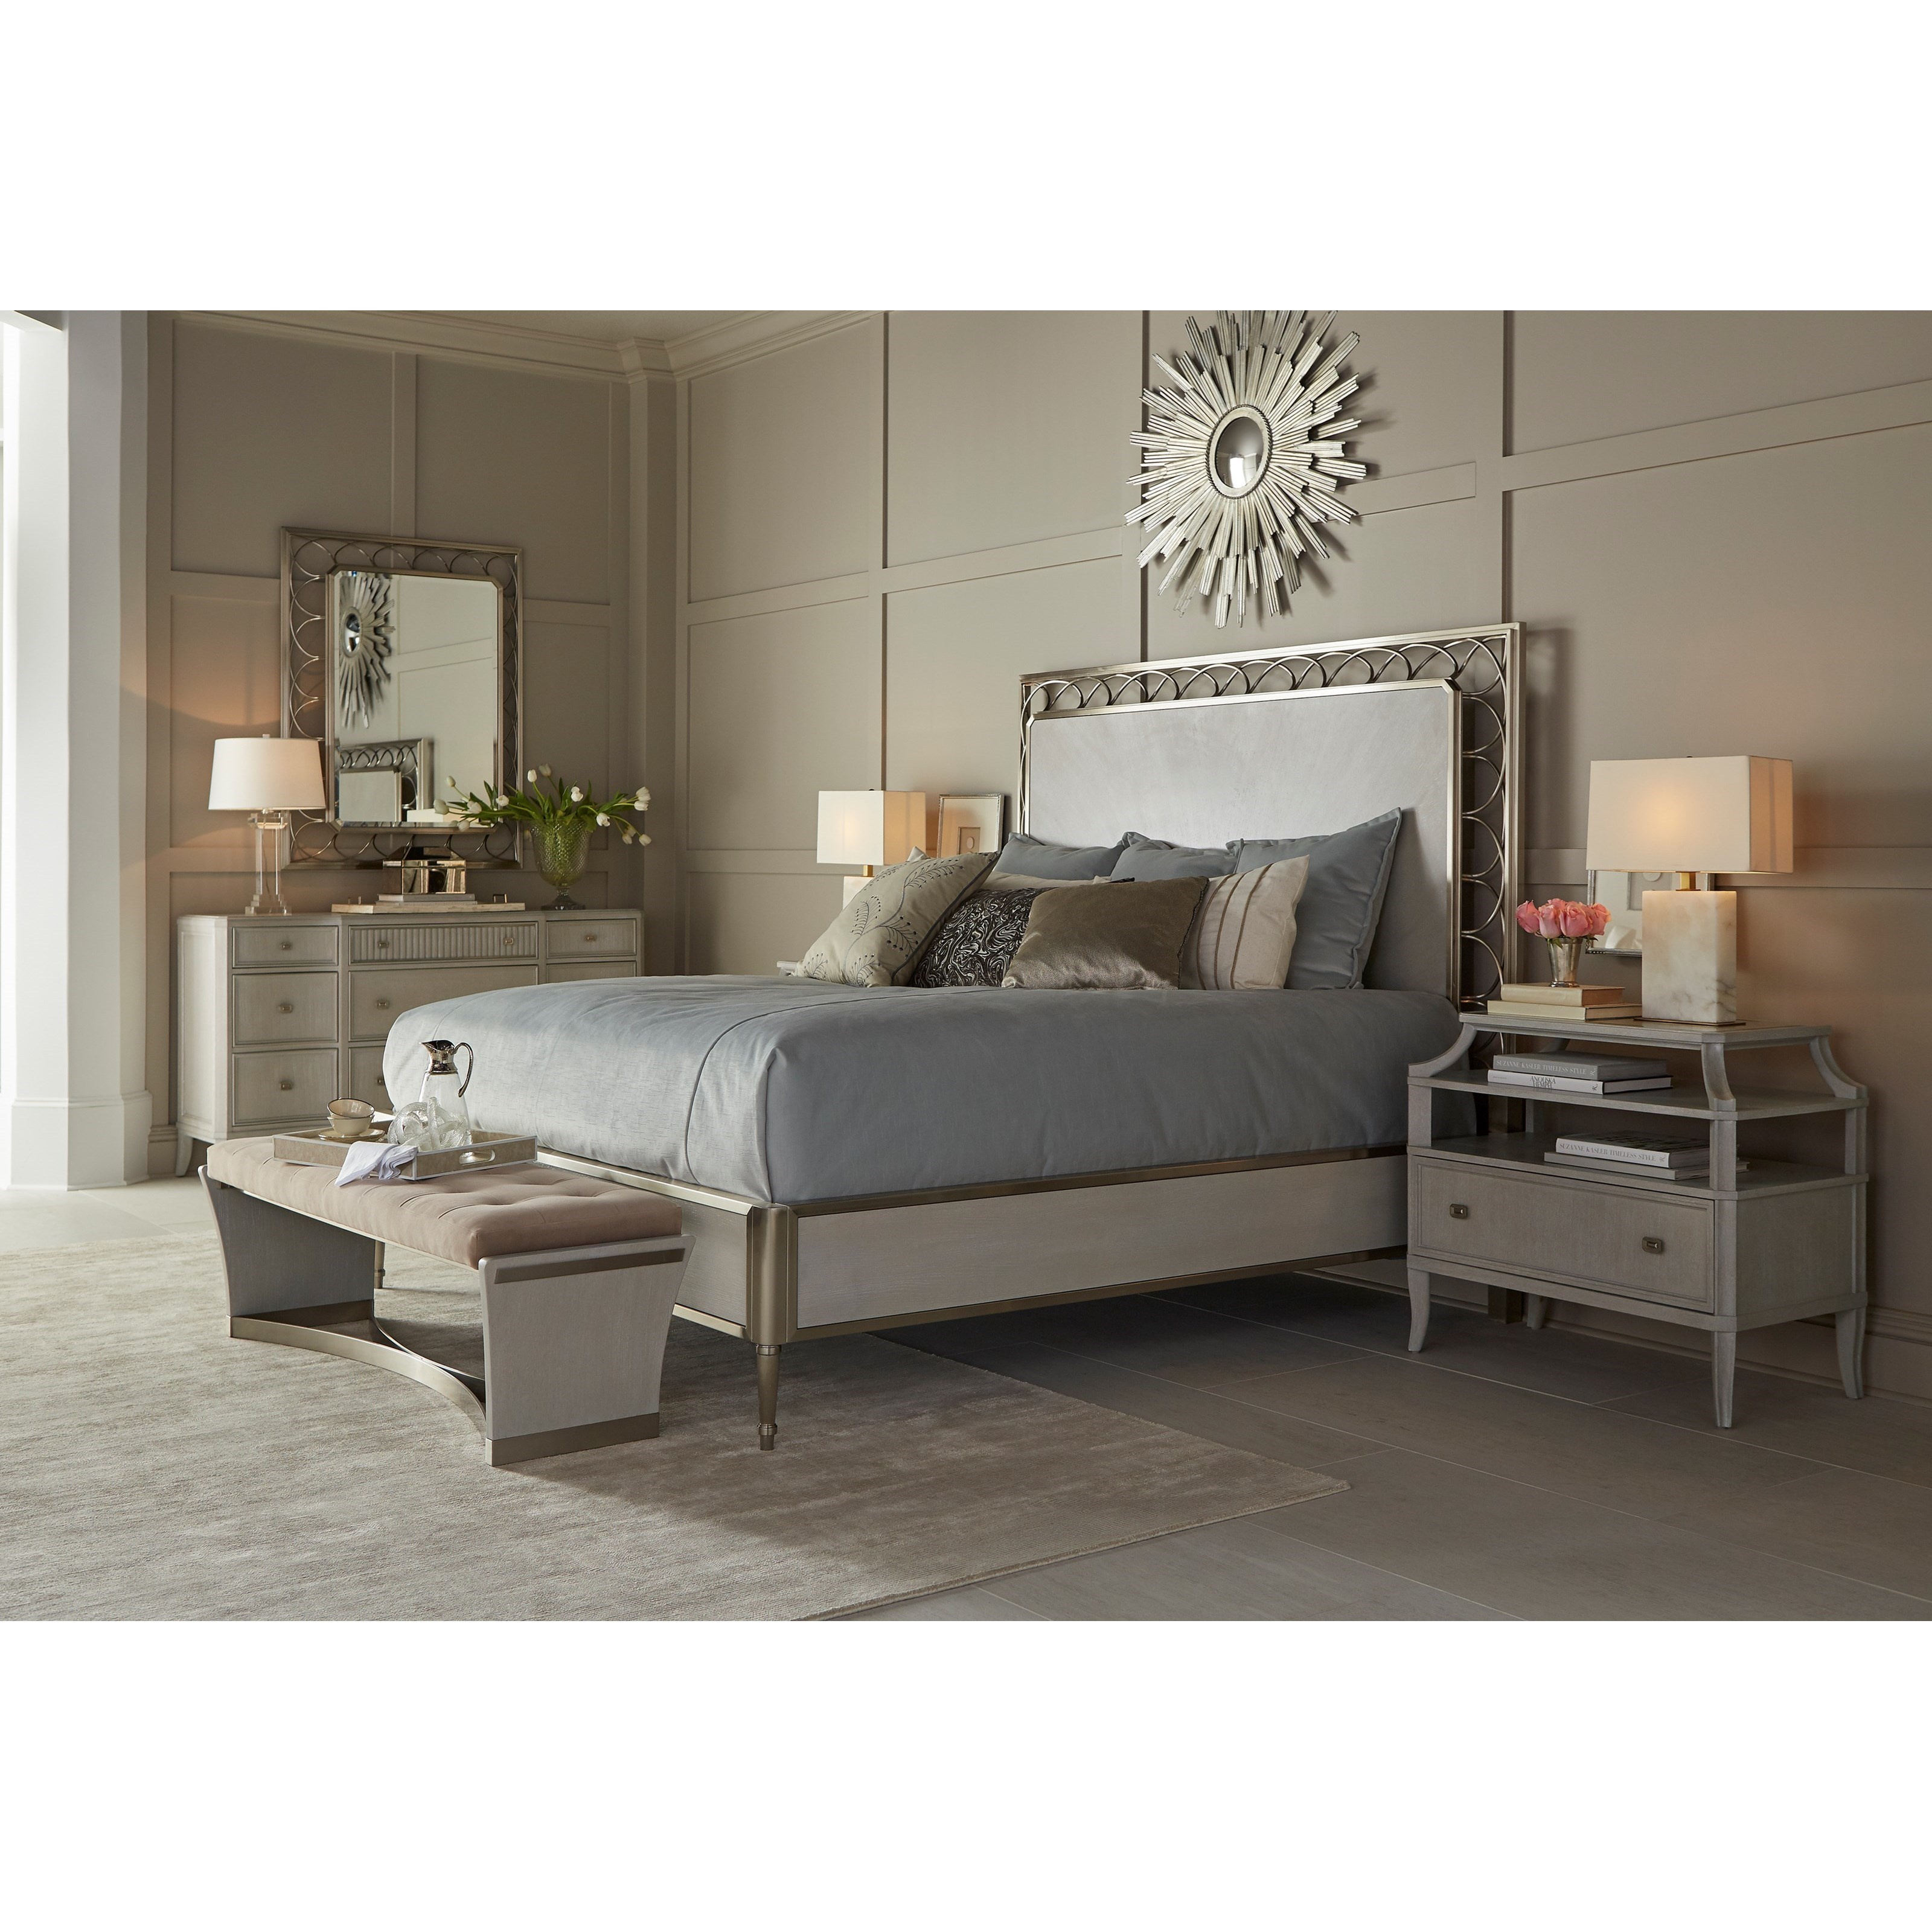 La Scala Queen Bedroom Group by A.R.T. Furniture Inc at Story & Lee Furniture